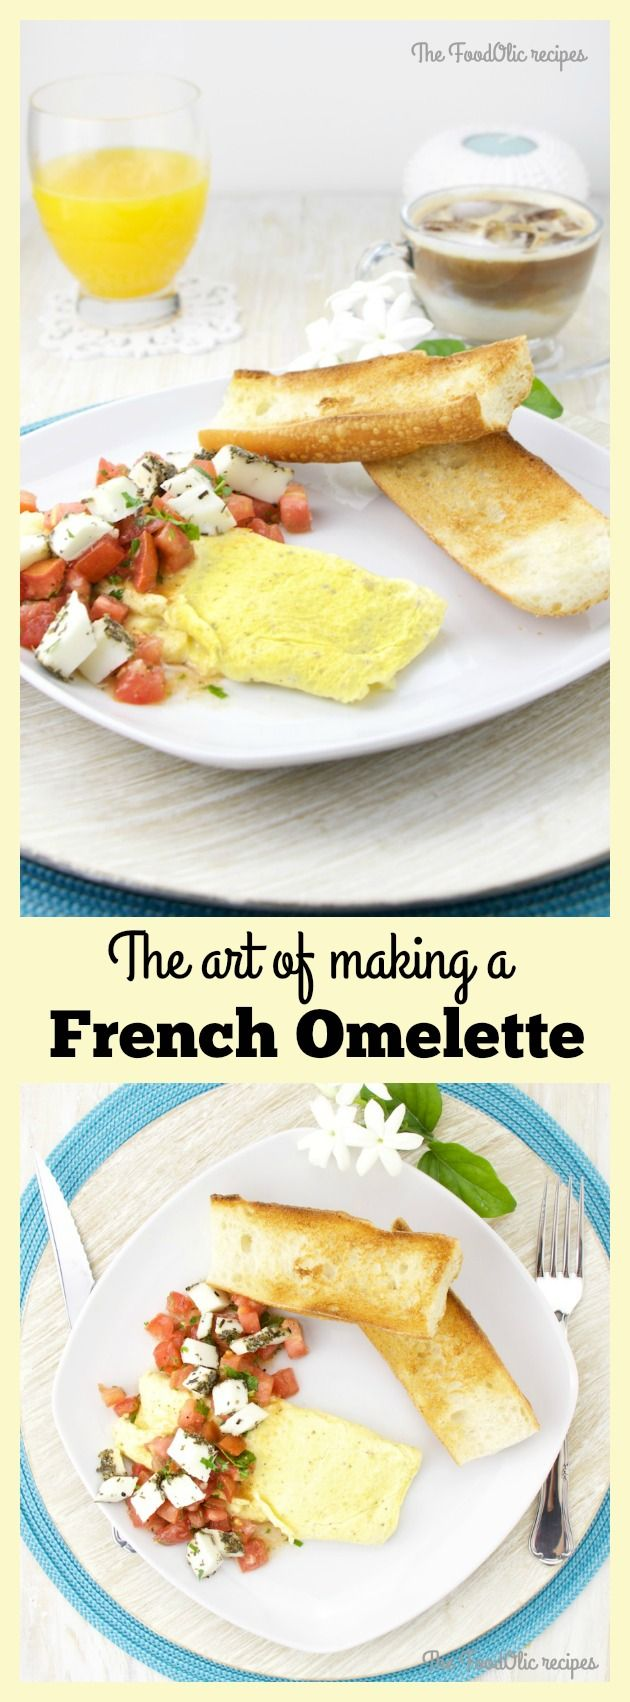 The technique to achieve a smooth omelette. #recipe #eggs #omelette #foodie #breakfast